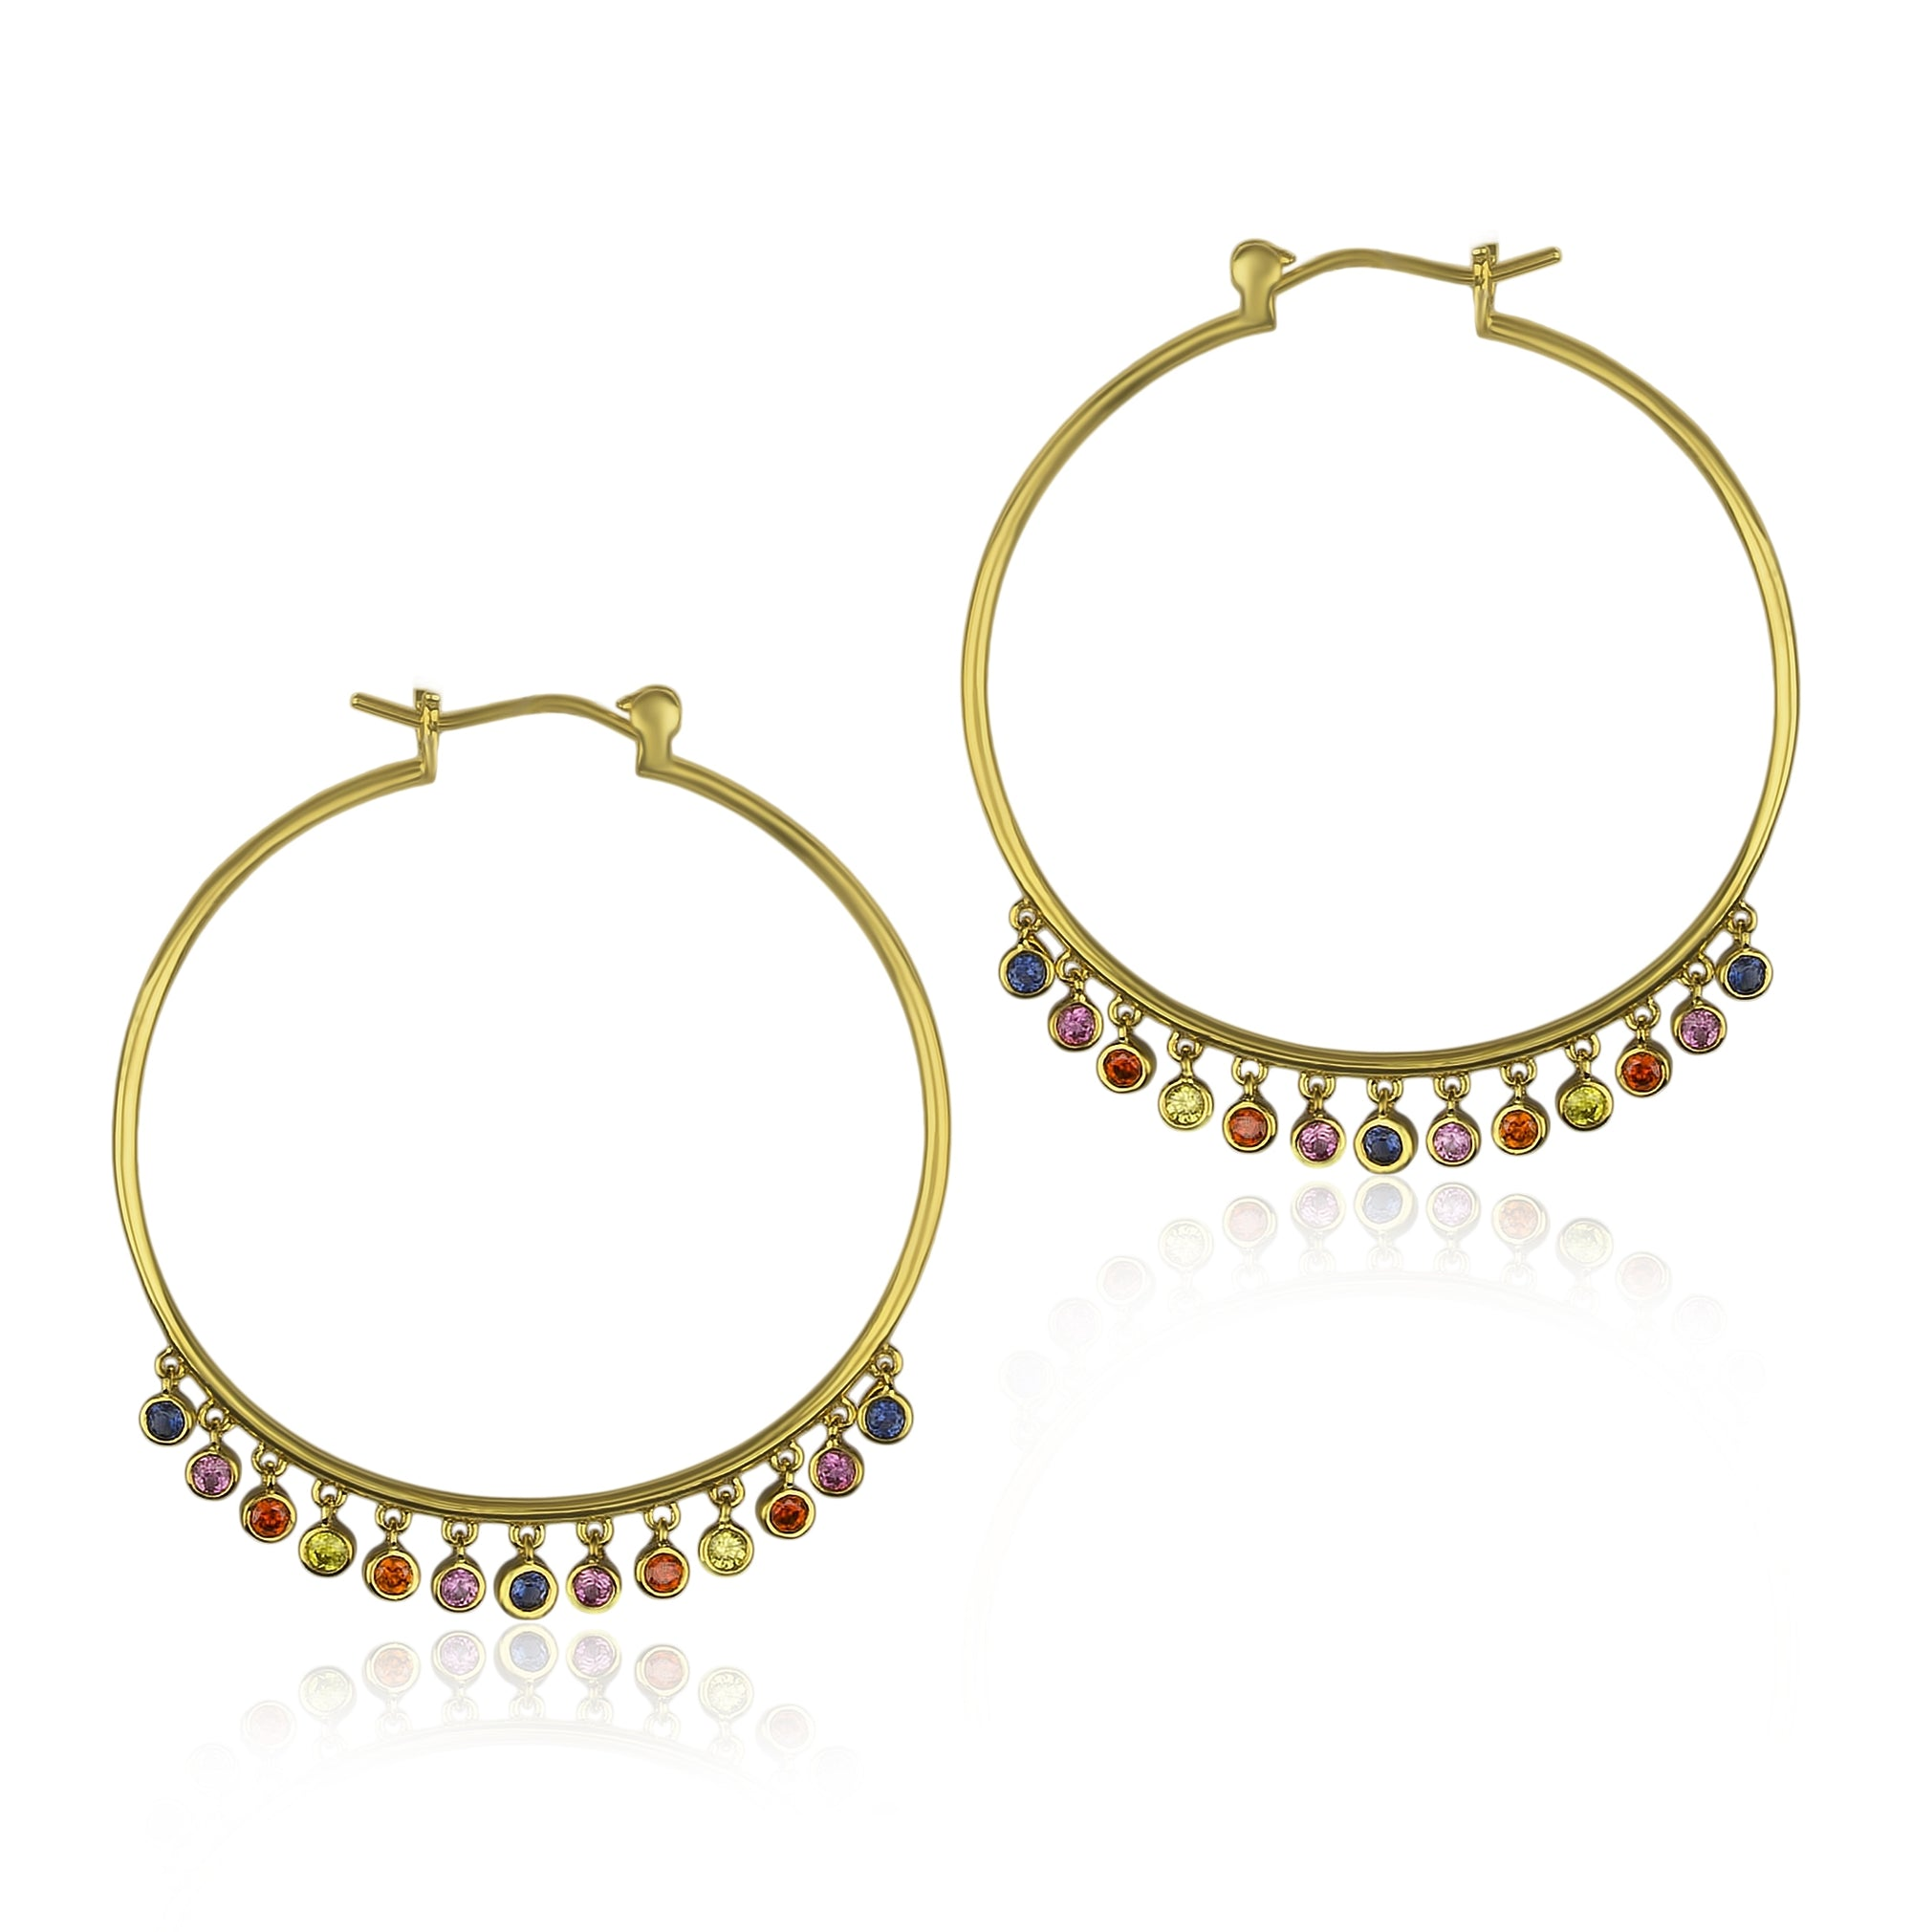 San Felipe Hoop Earrings